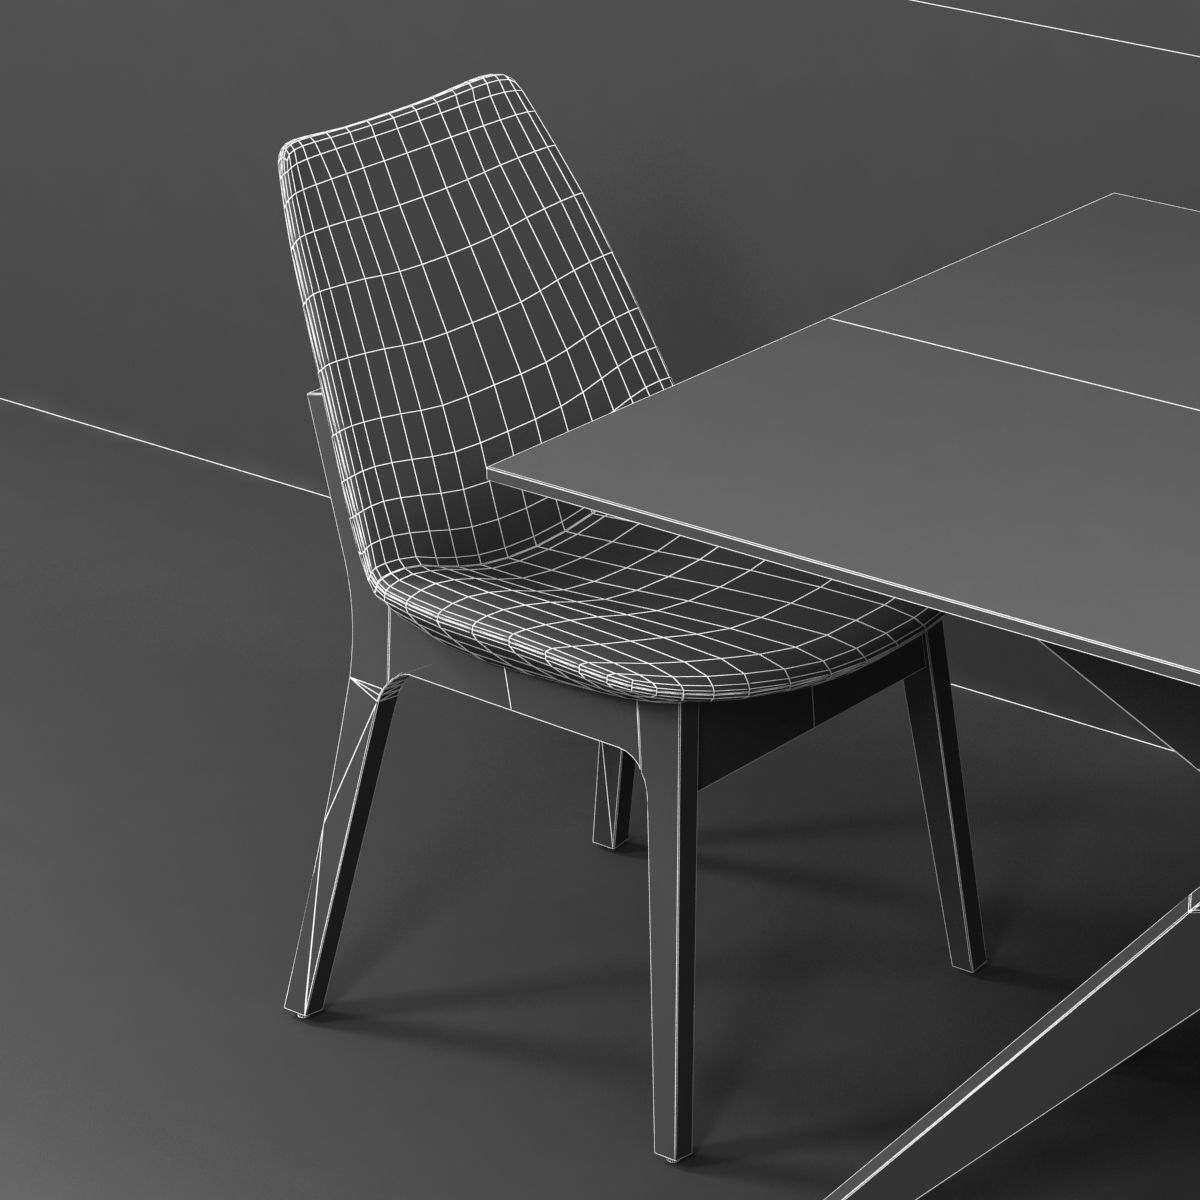 Charmant ... Magna Glass Dining Table By Inmod Sohoconcept Eiffel Wood Chair 3d  Model Max Obj 3ds Fbx ...